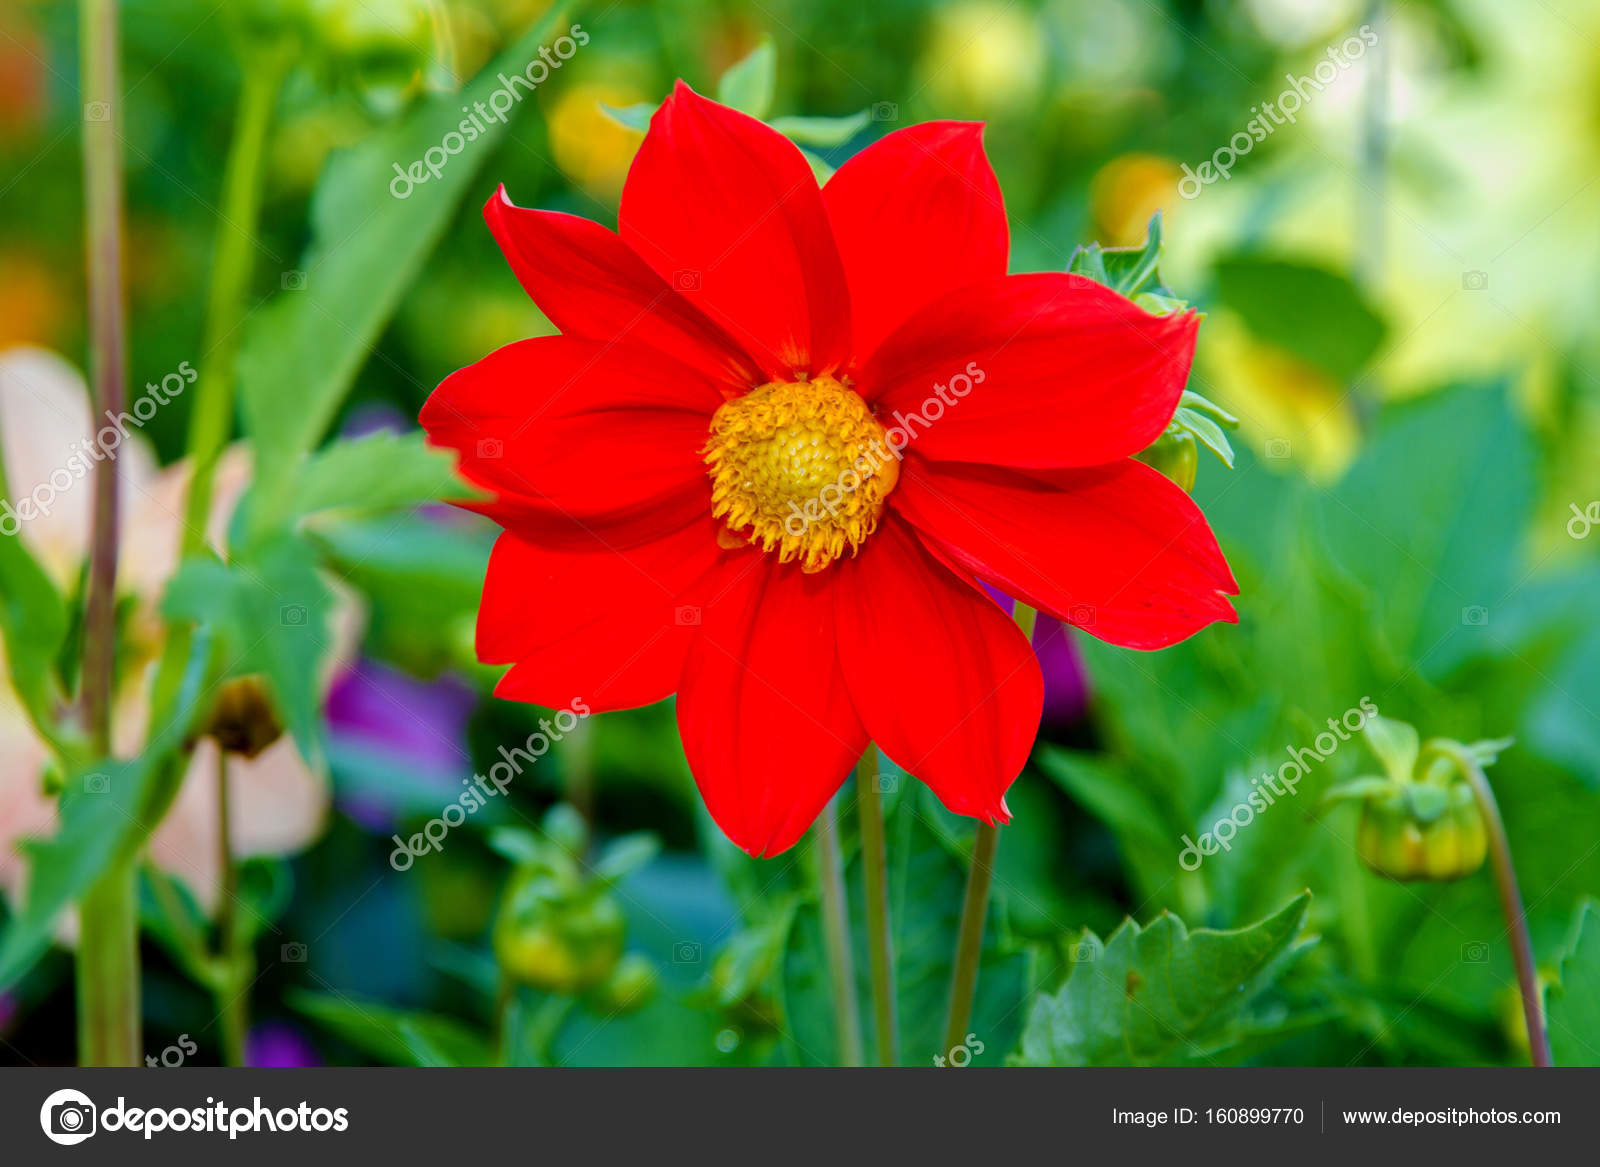 Flower Red Dahlia With Yellow Center Stock Photo Artex67 160899770